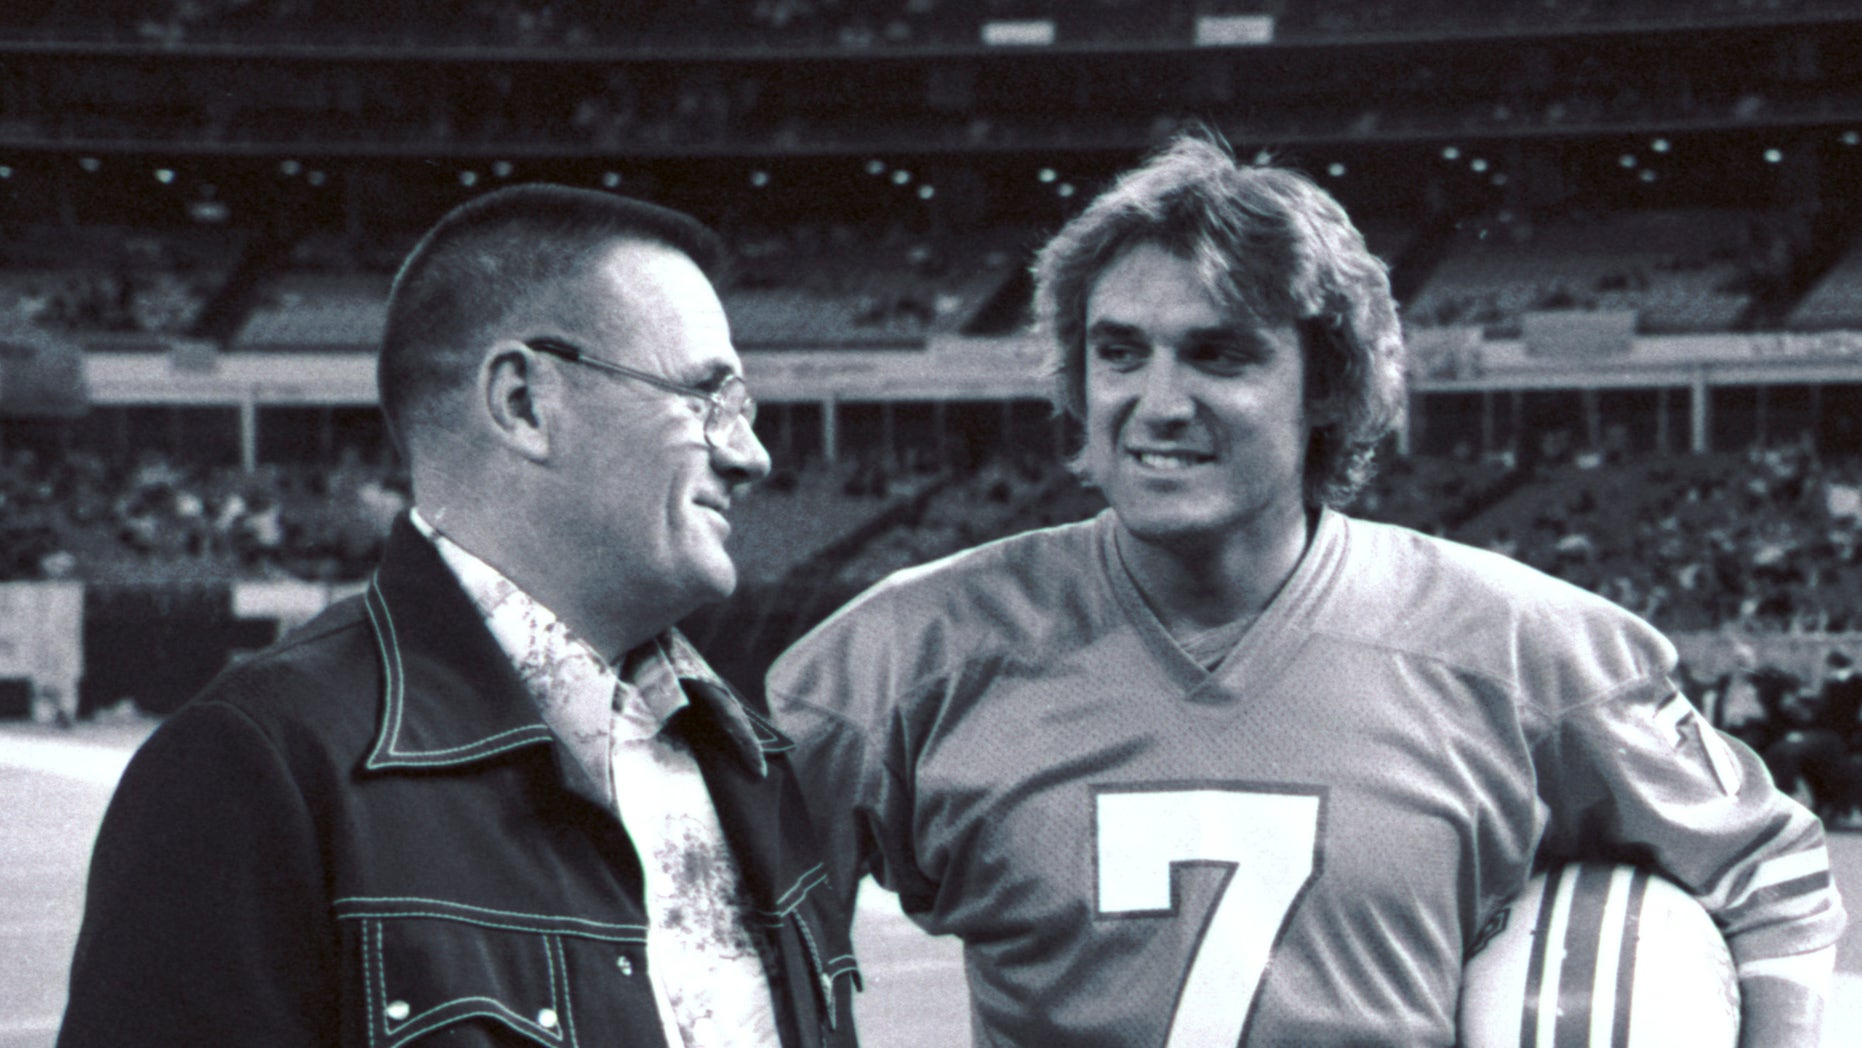 In this November 1975 file photo, Houston Oilers coach Bum Phillips, left, talks with quarterback Dan Pastorini before the Oilers' NFL football game against the Pittsburgh Steelers in Houston.